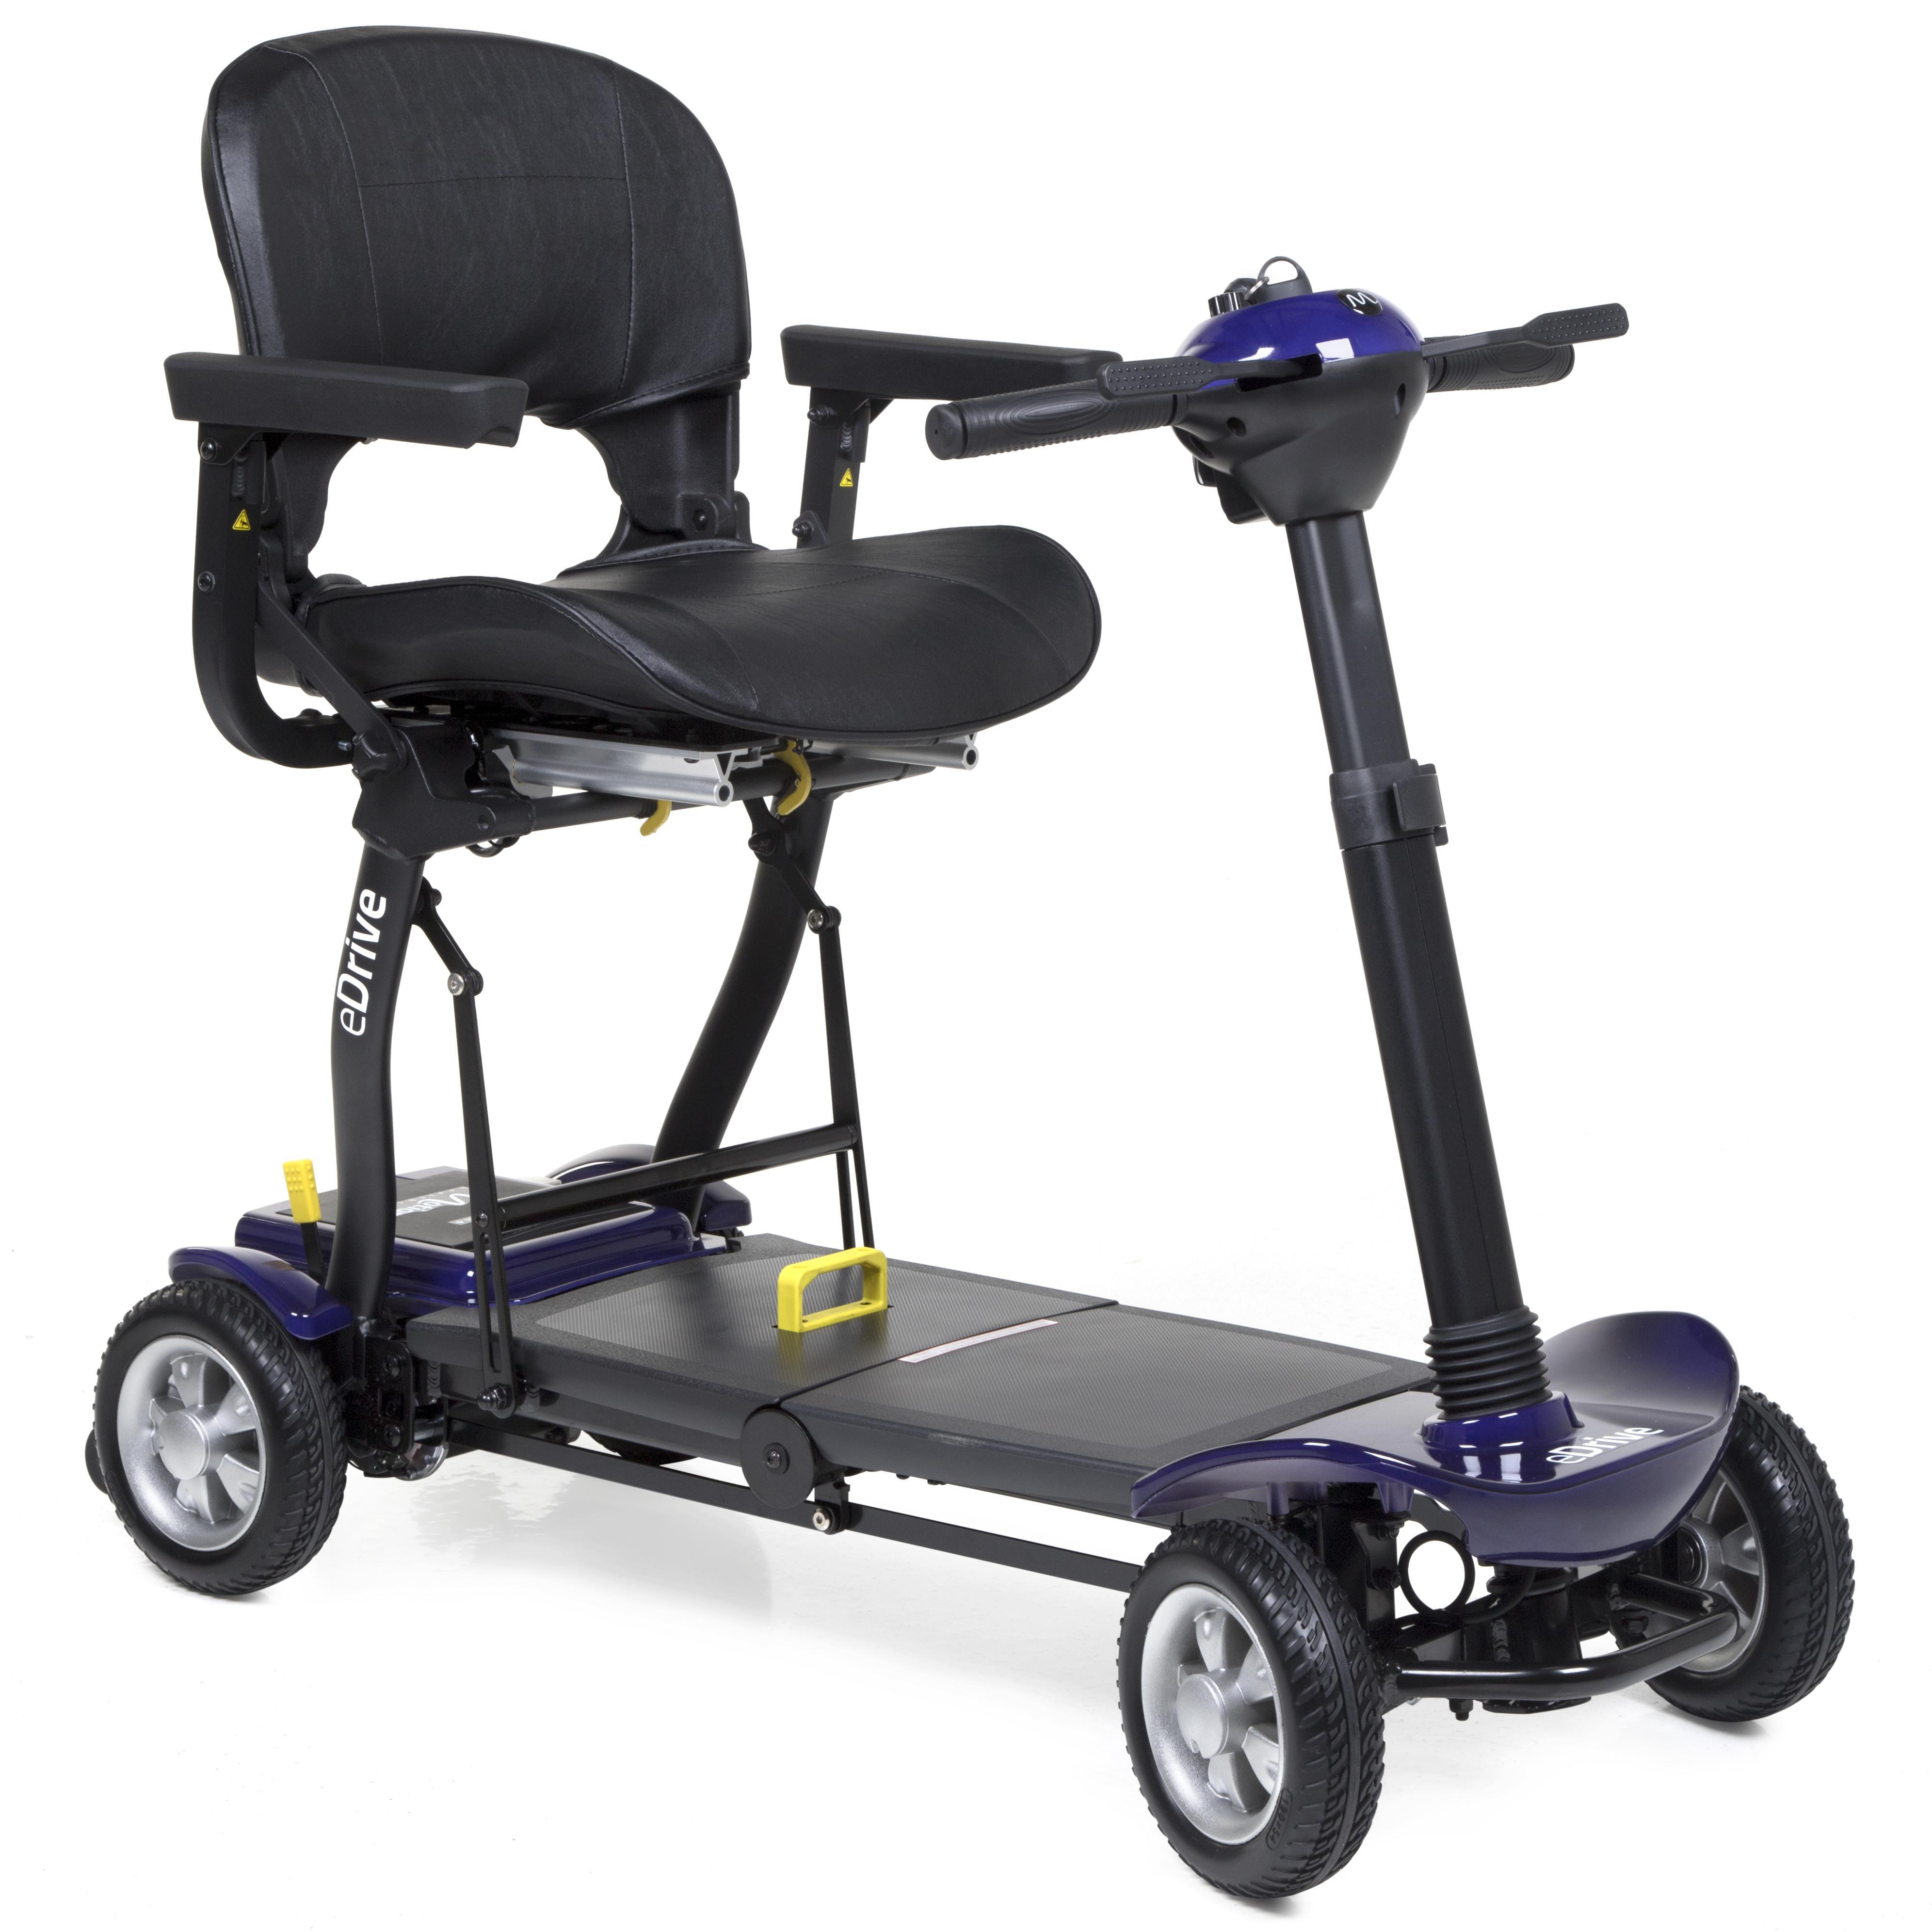 eDrive Folding Mobility Scooter